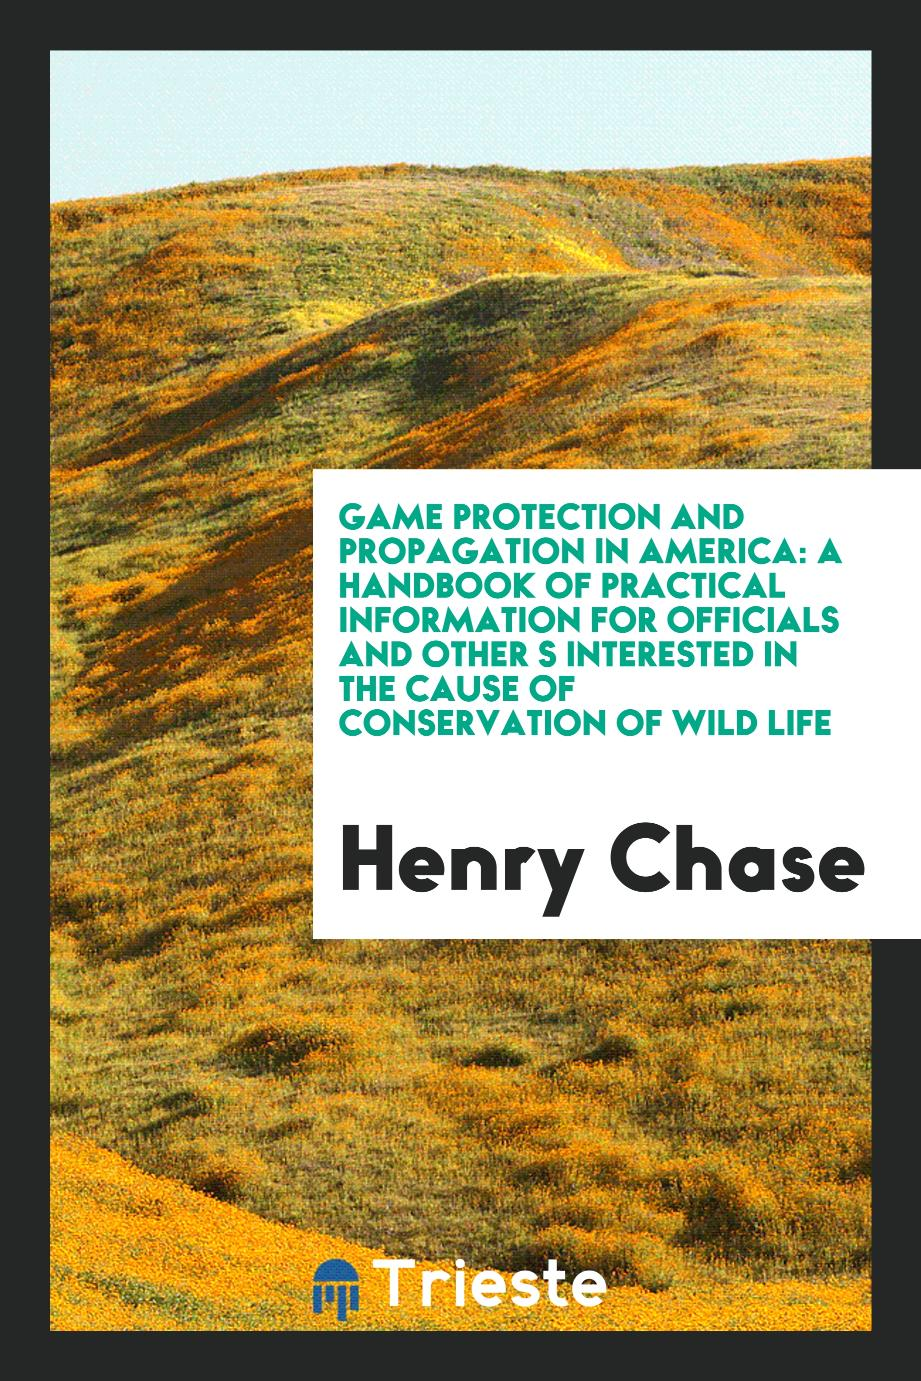 Game Protection and Propagation in America: A Handbook of Practical Information for Officials and Other S Interested in the Cause of Conservation of Wild Life